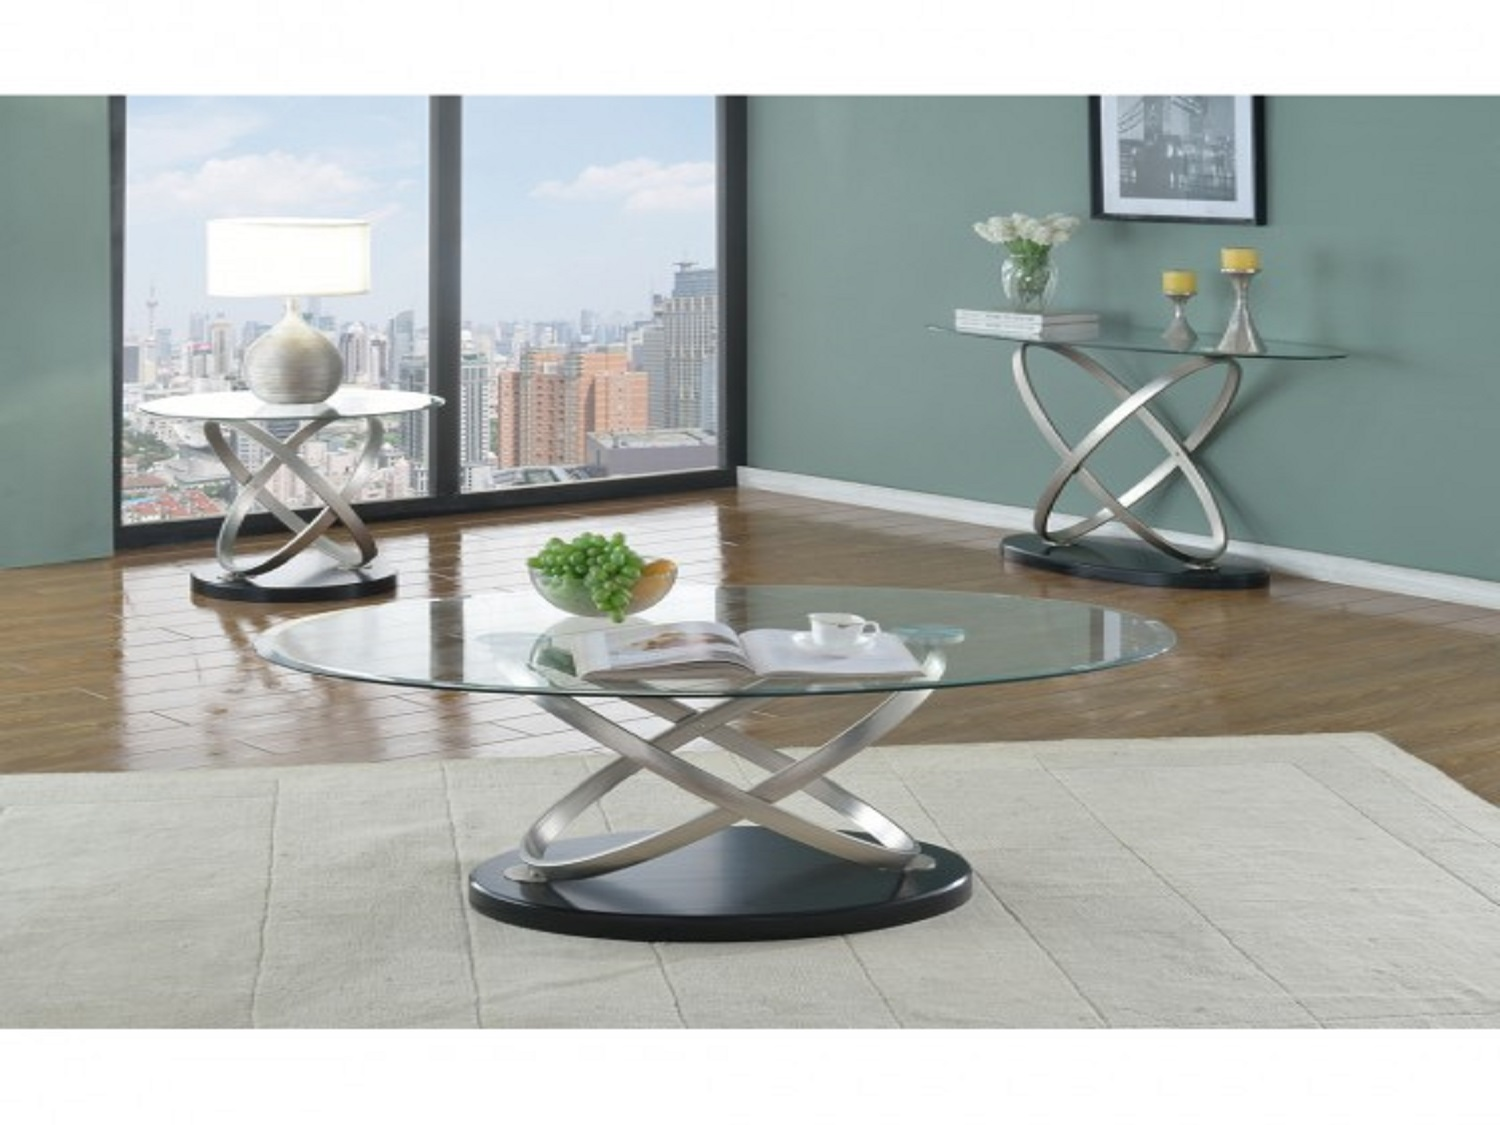 Chantal Coffee Table Only, 4235, Coffee Table by Midha Furniture to Brampton, Mississauga, Etobicoke, Toronto, Scraborough, Caledon, Oakville, Markham, Ajax, Pickering, Oshawa, Richmondhill, Kitchener, Hamilton and GTA area